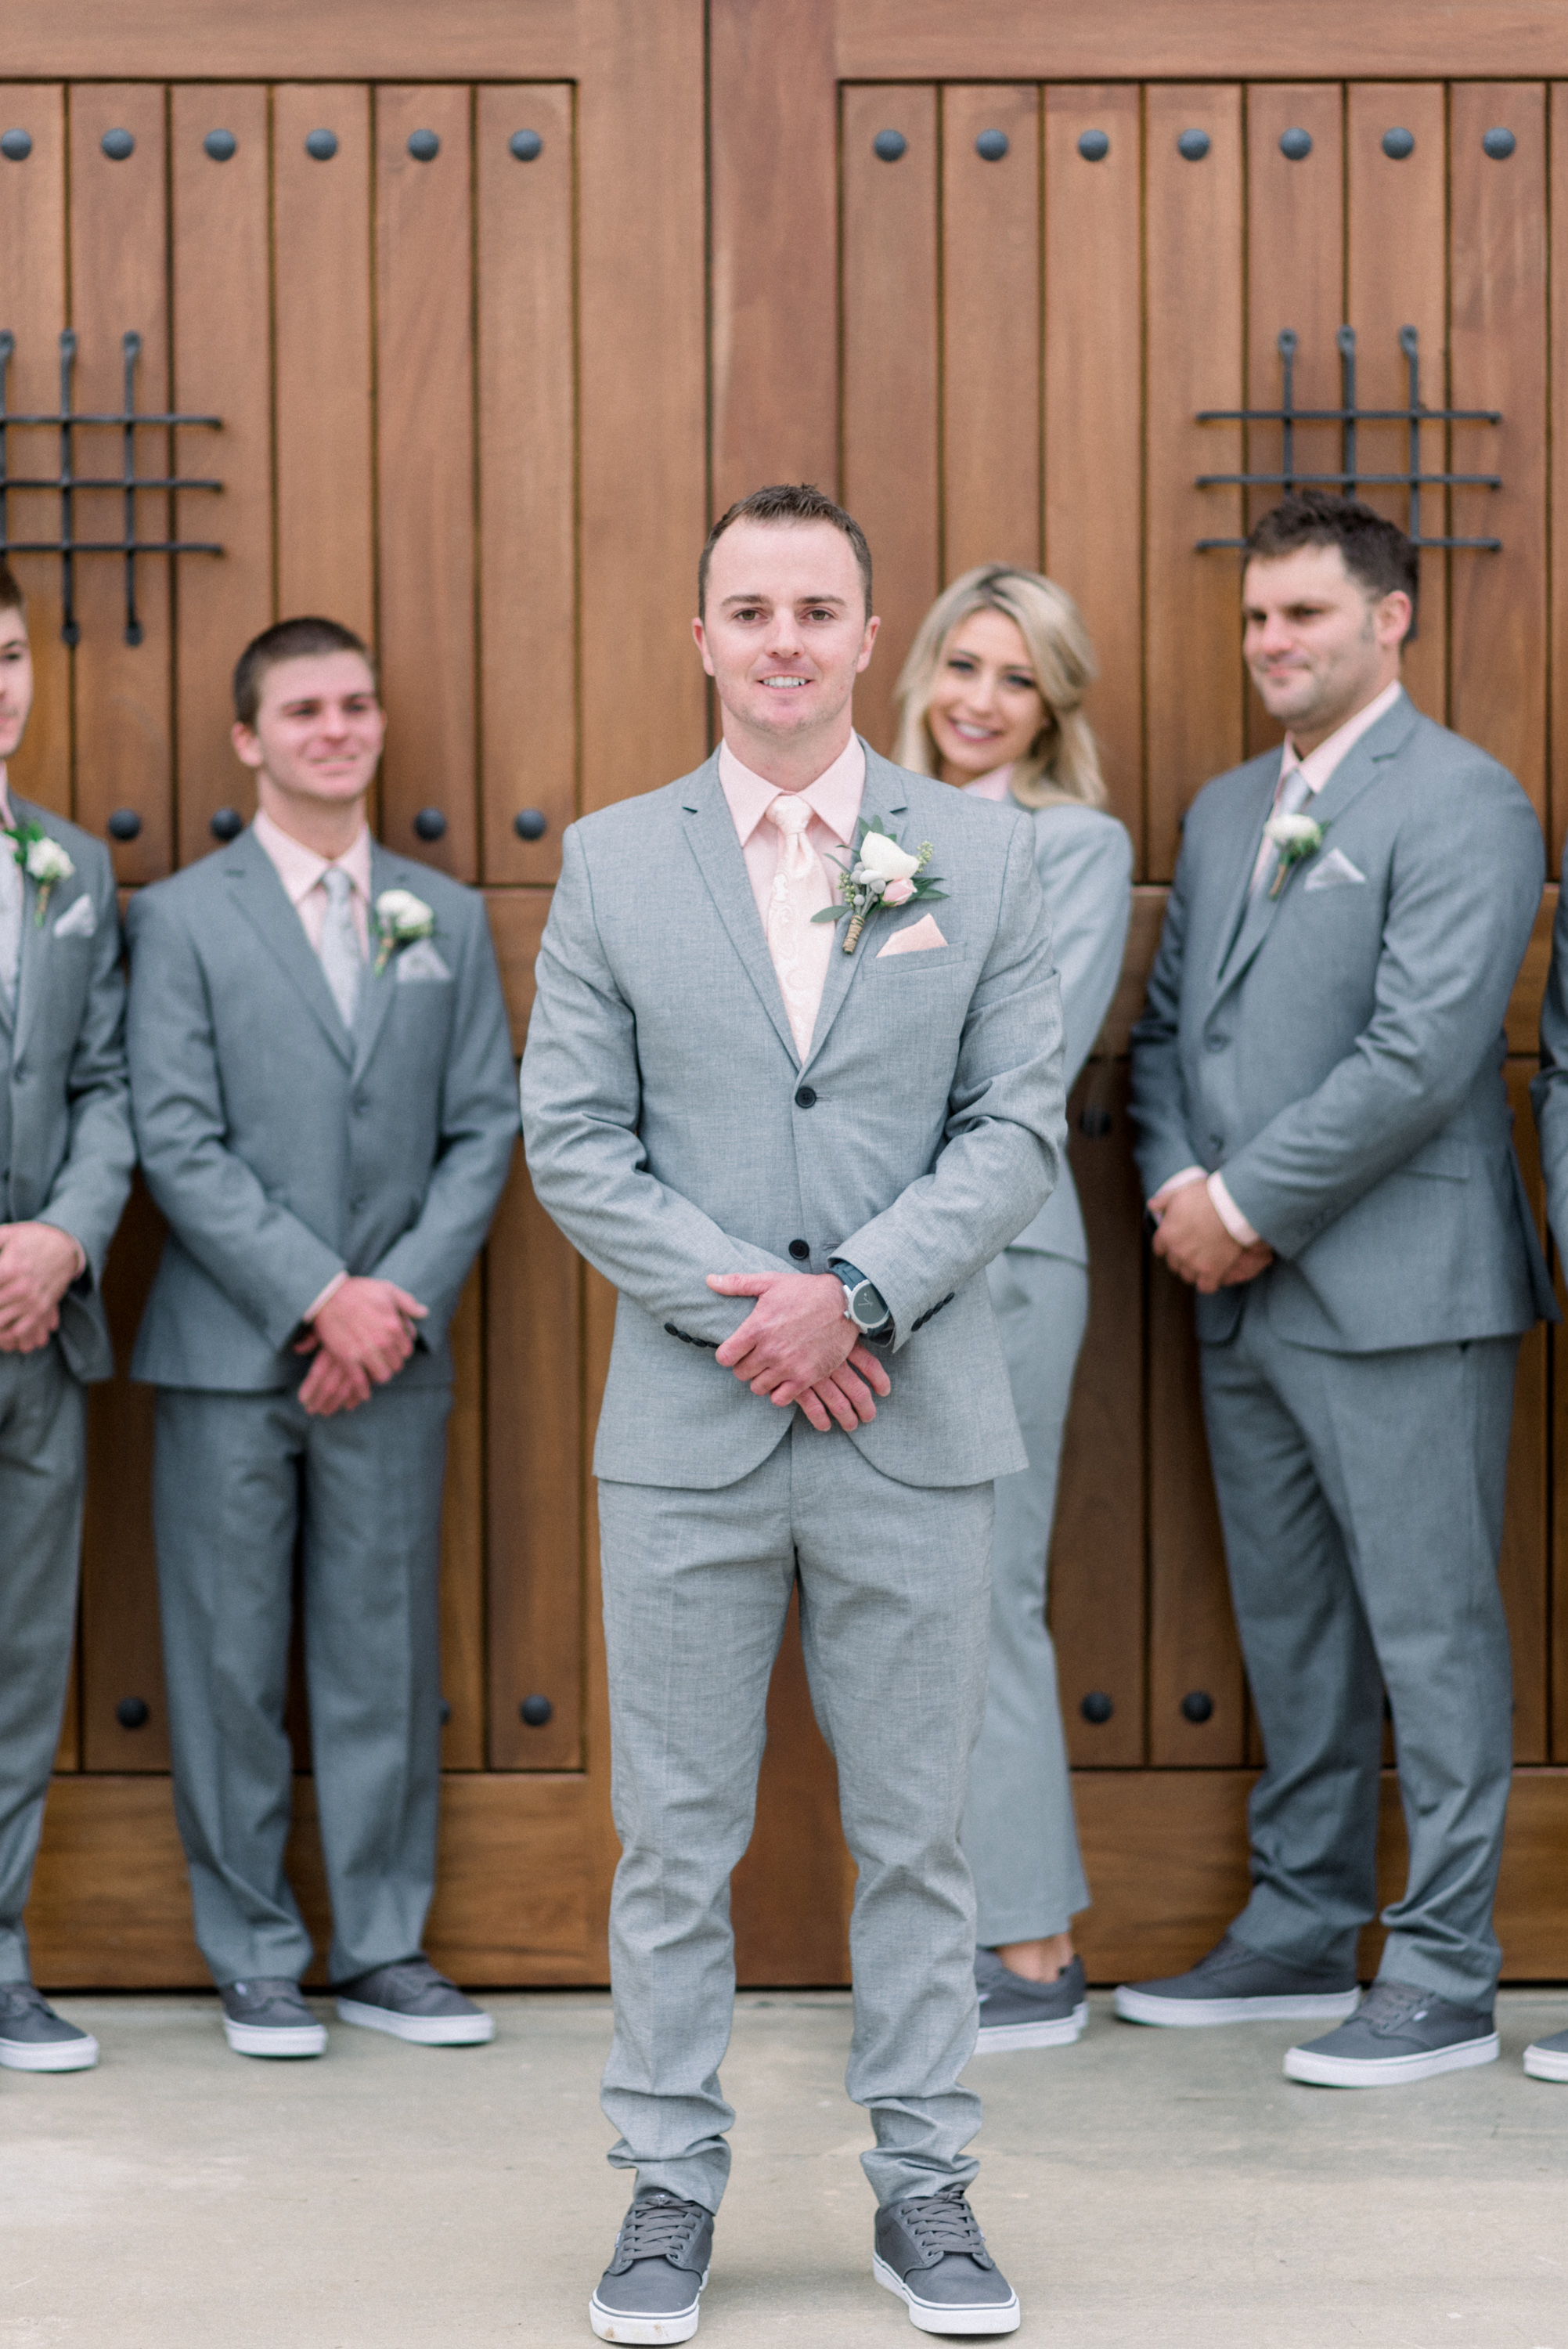 Baker wedding (780 of 850).jpg